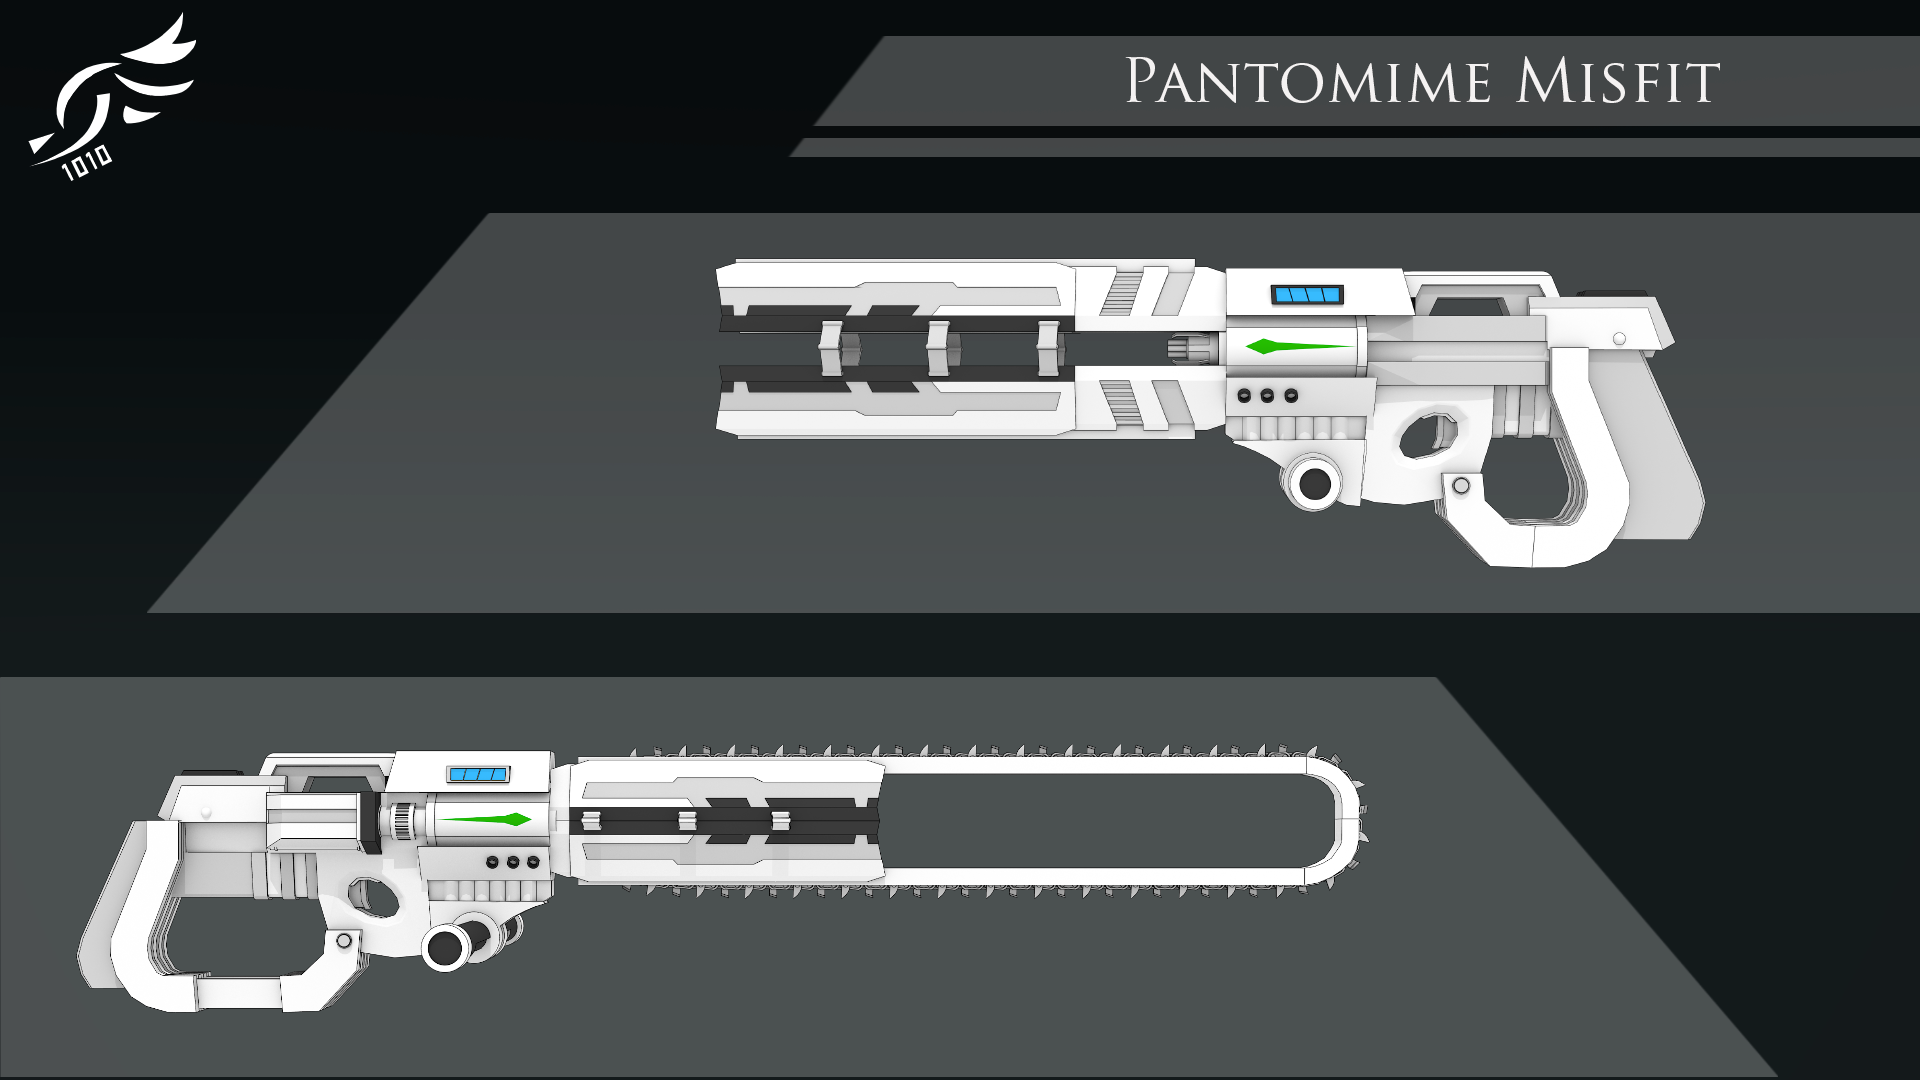 Pin by true truth on weapons pinterest rwby weapons and rwby oc